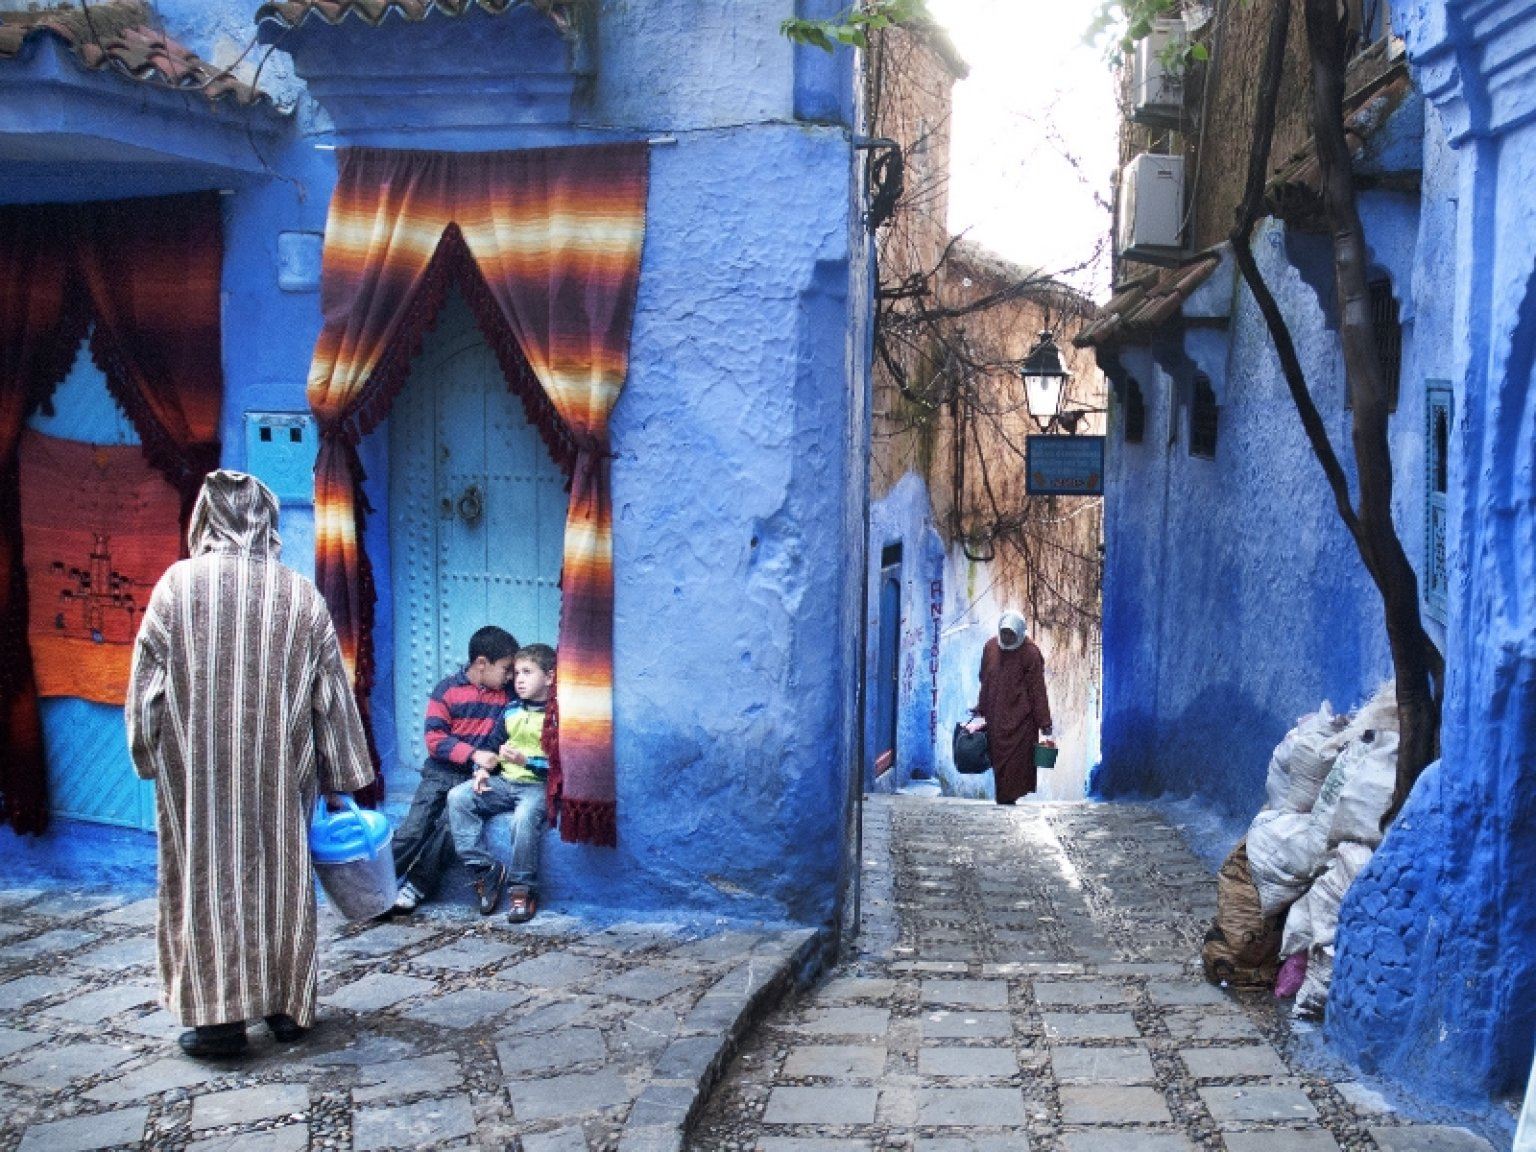 chaouen-excursion-marruecos-medina-de-chaouen